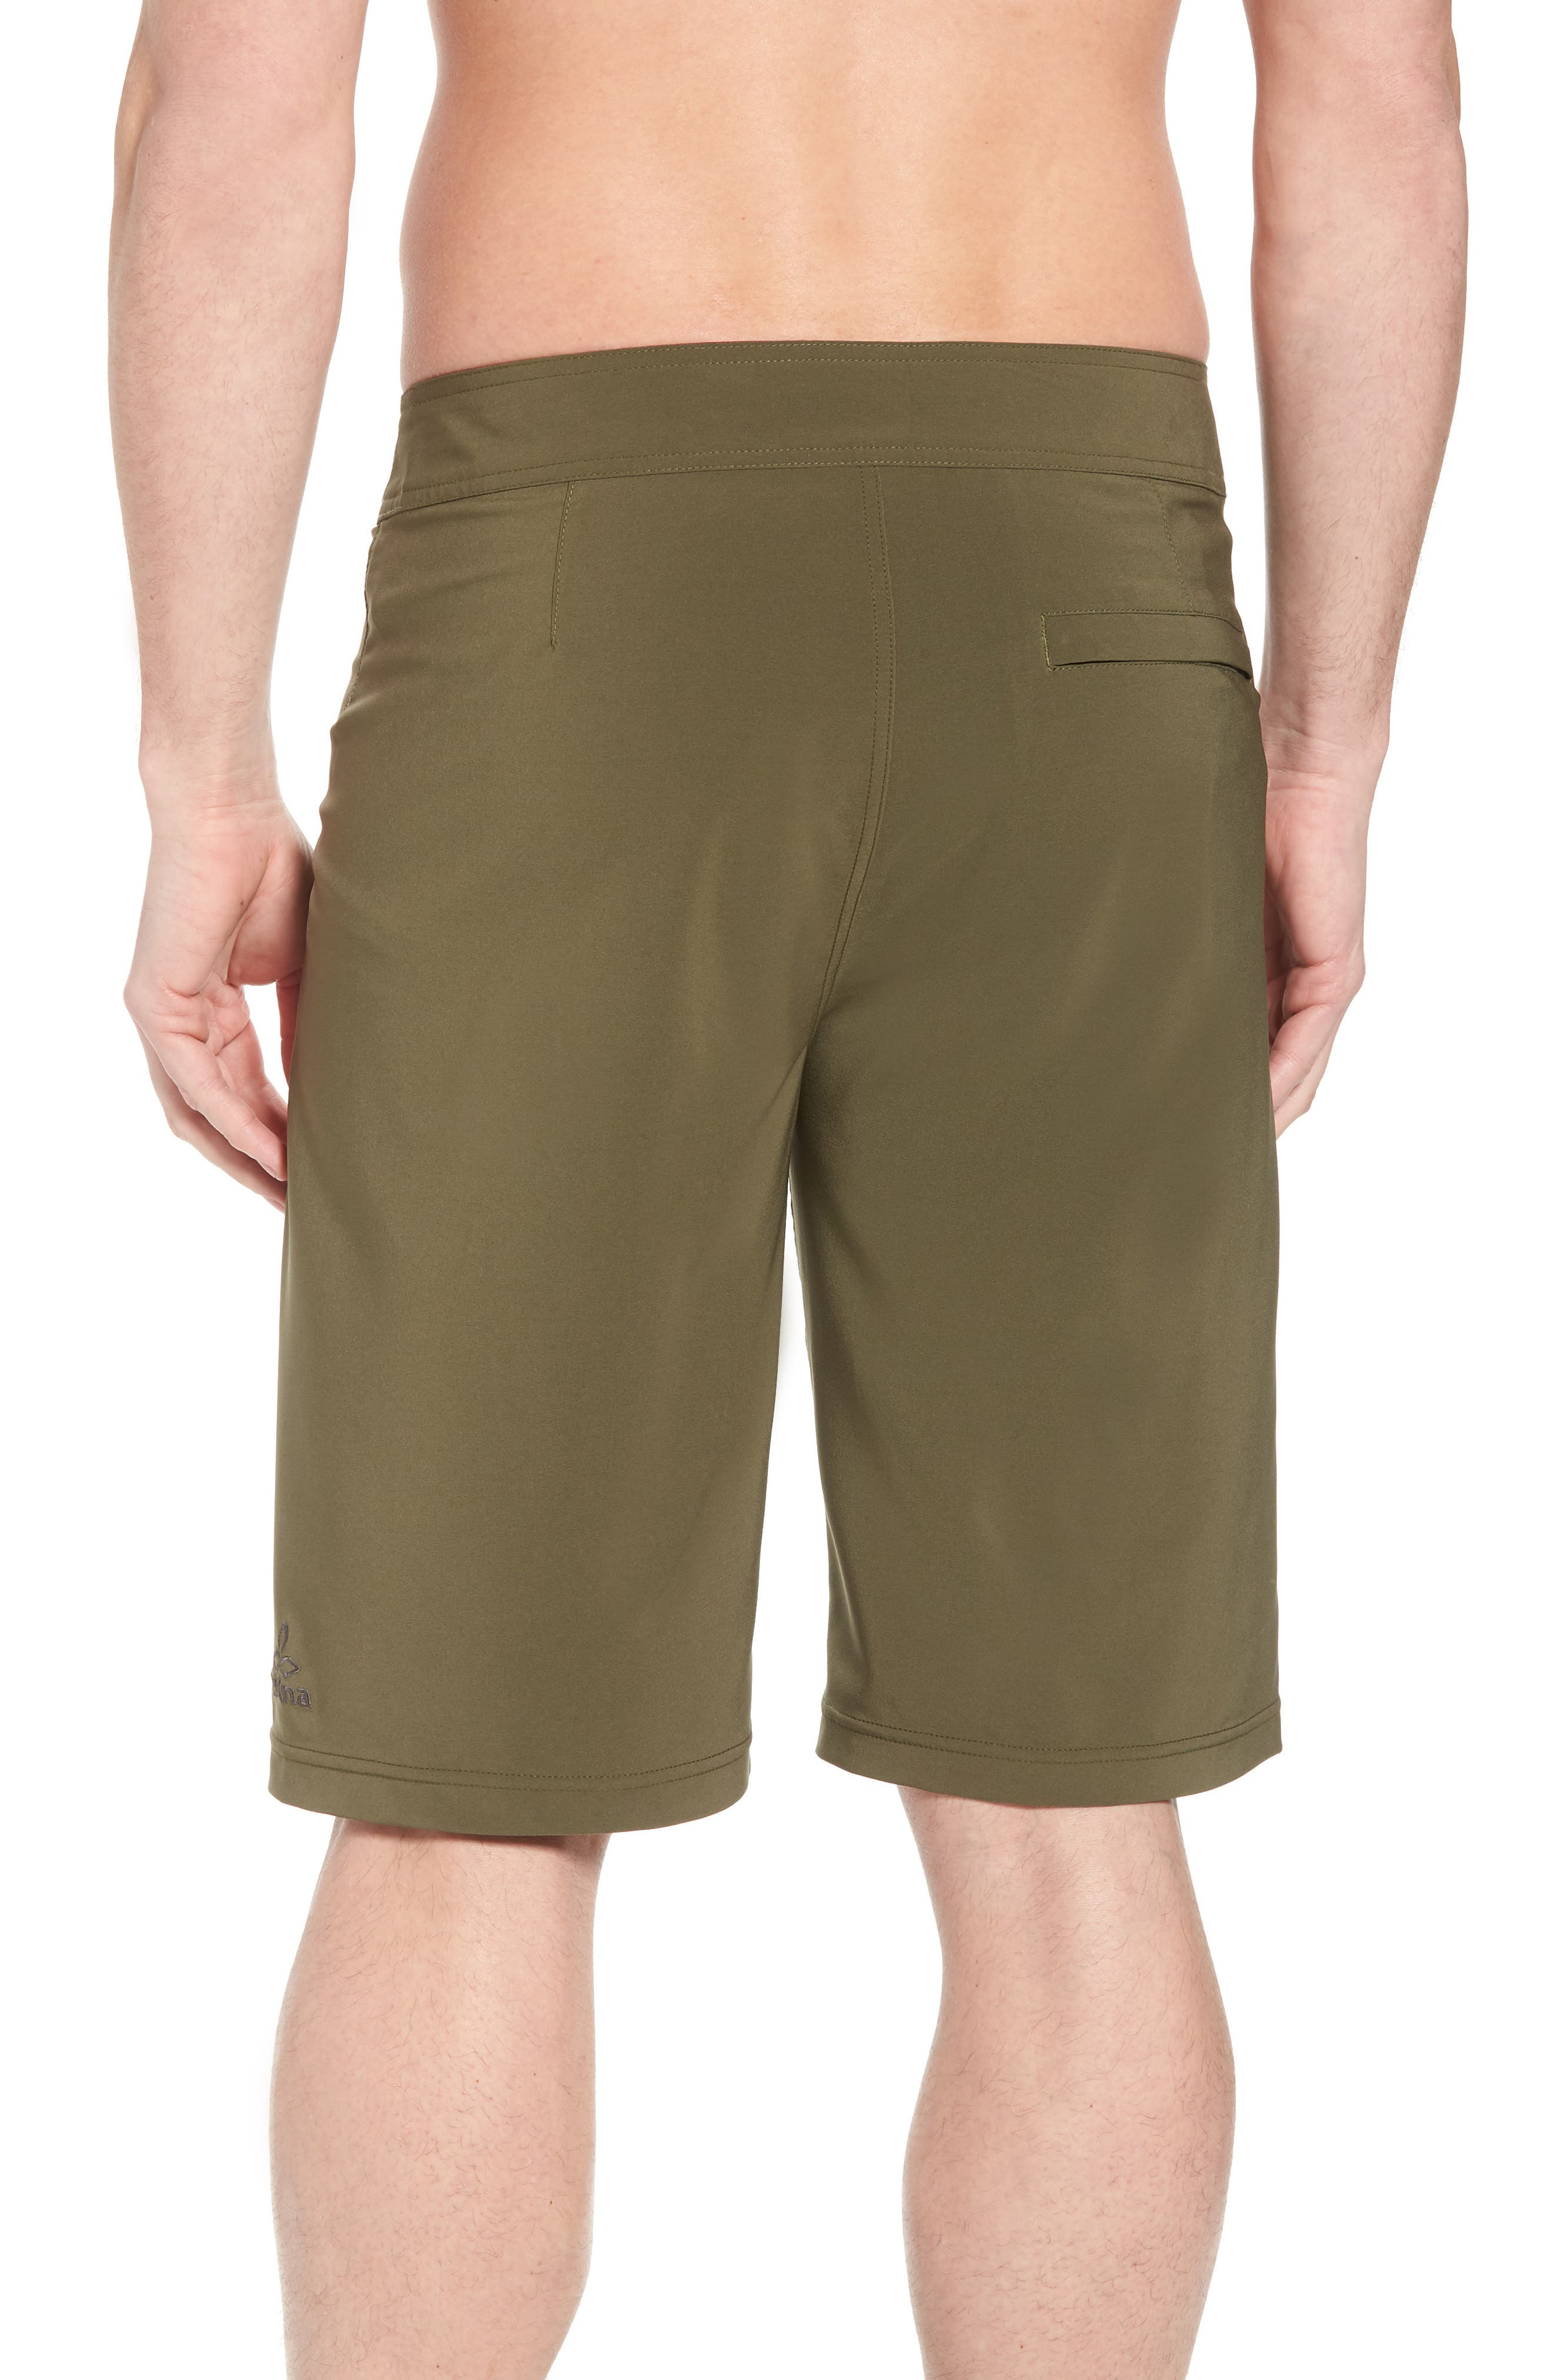 'Sediment' Stretch Board Shorts,                             Alternate thumbnail 2, color,                             Cargo Green